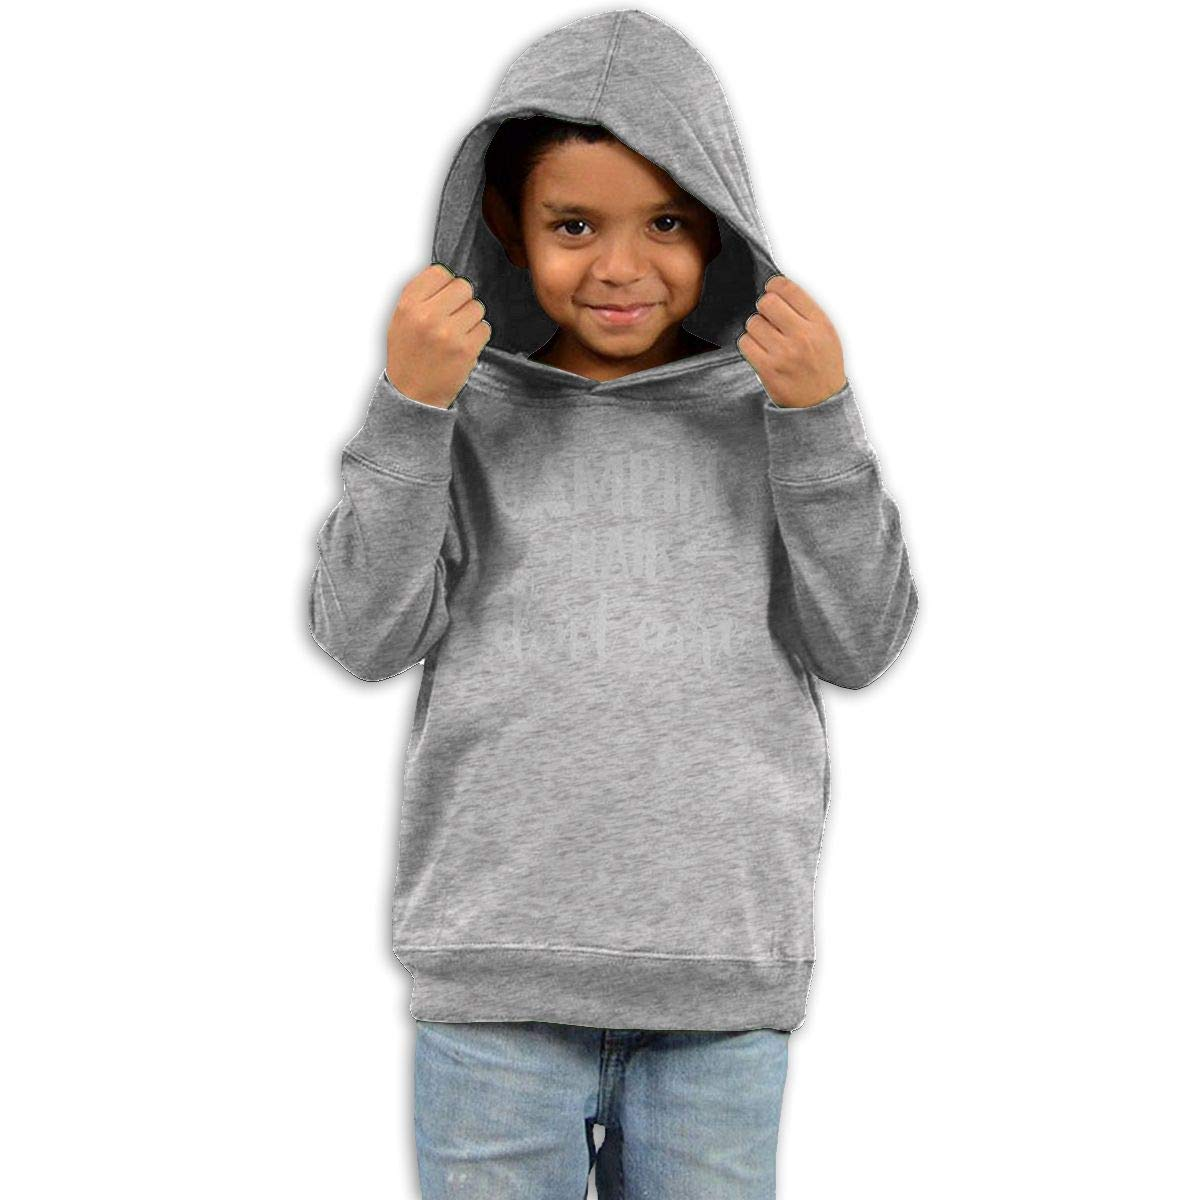 GUOZX Childrens Hooded Sweater Camping Hair Dont Care Girl Sweater Black